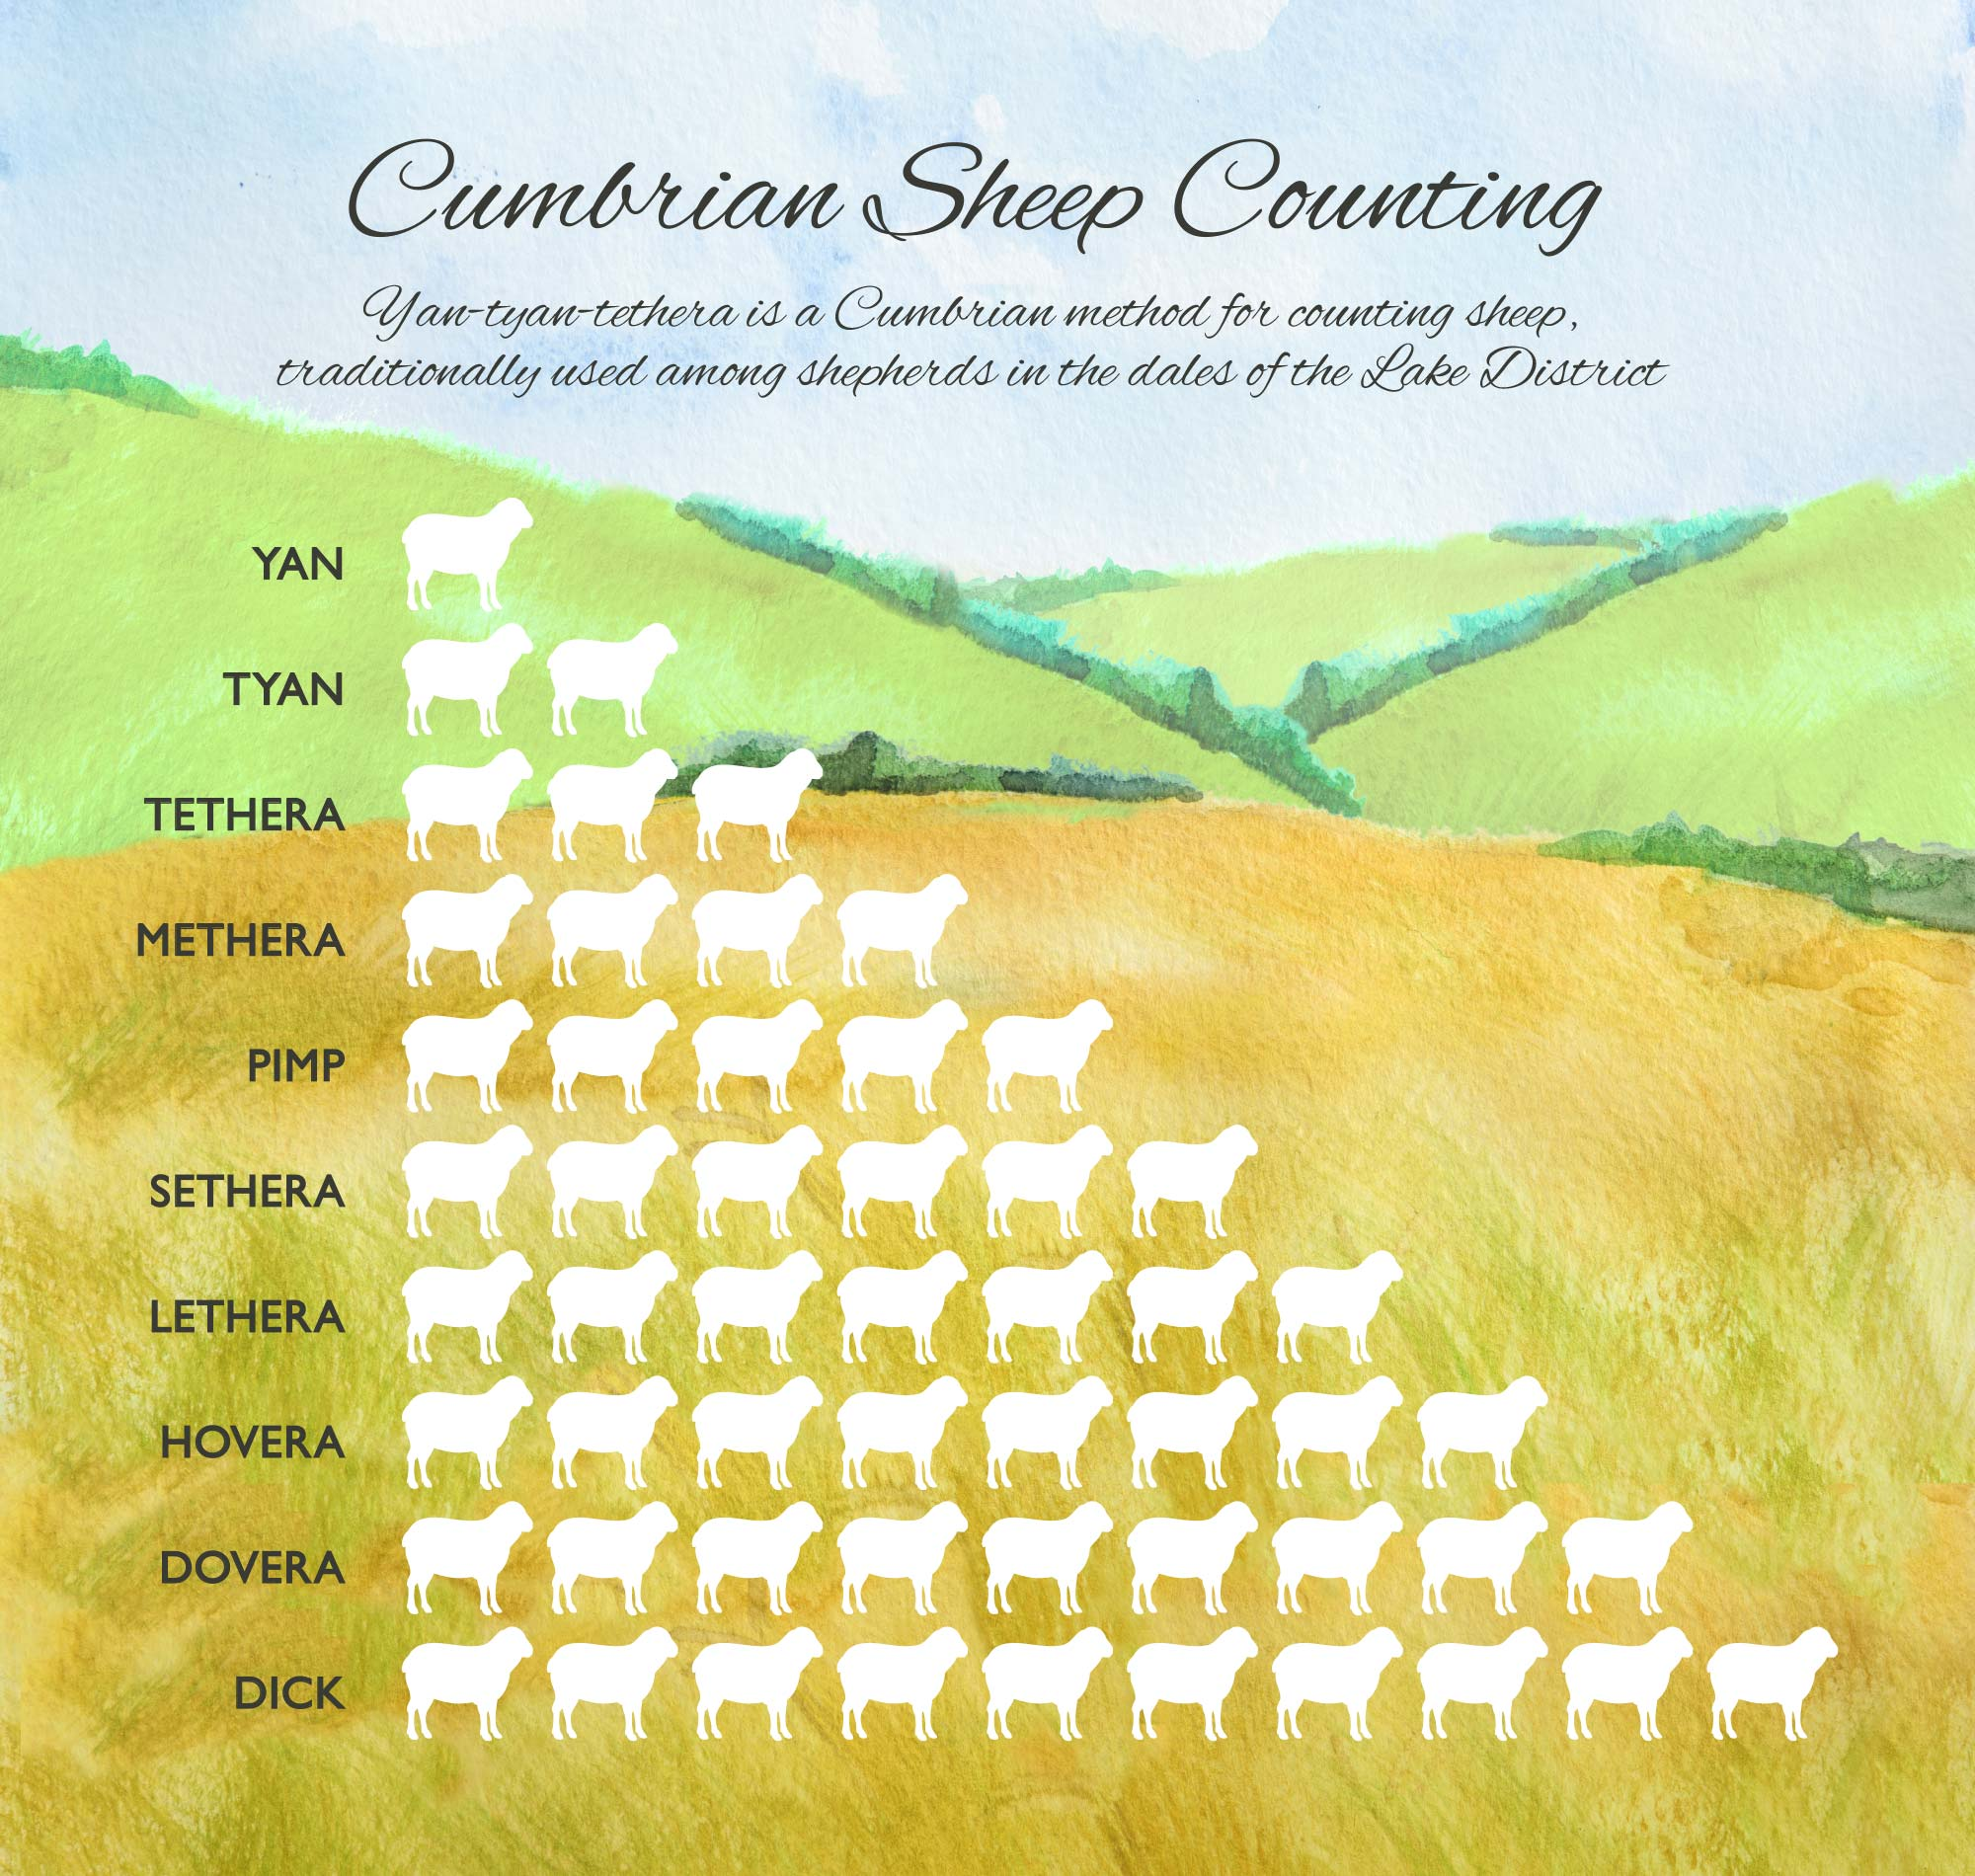 Sheep counting info panel